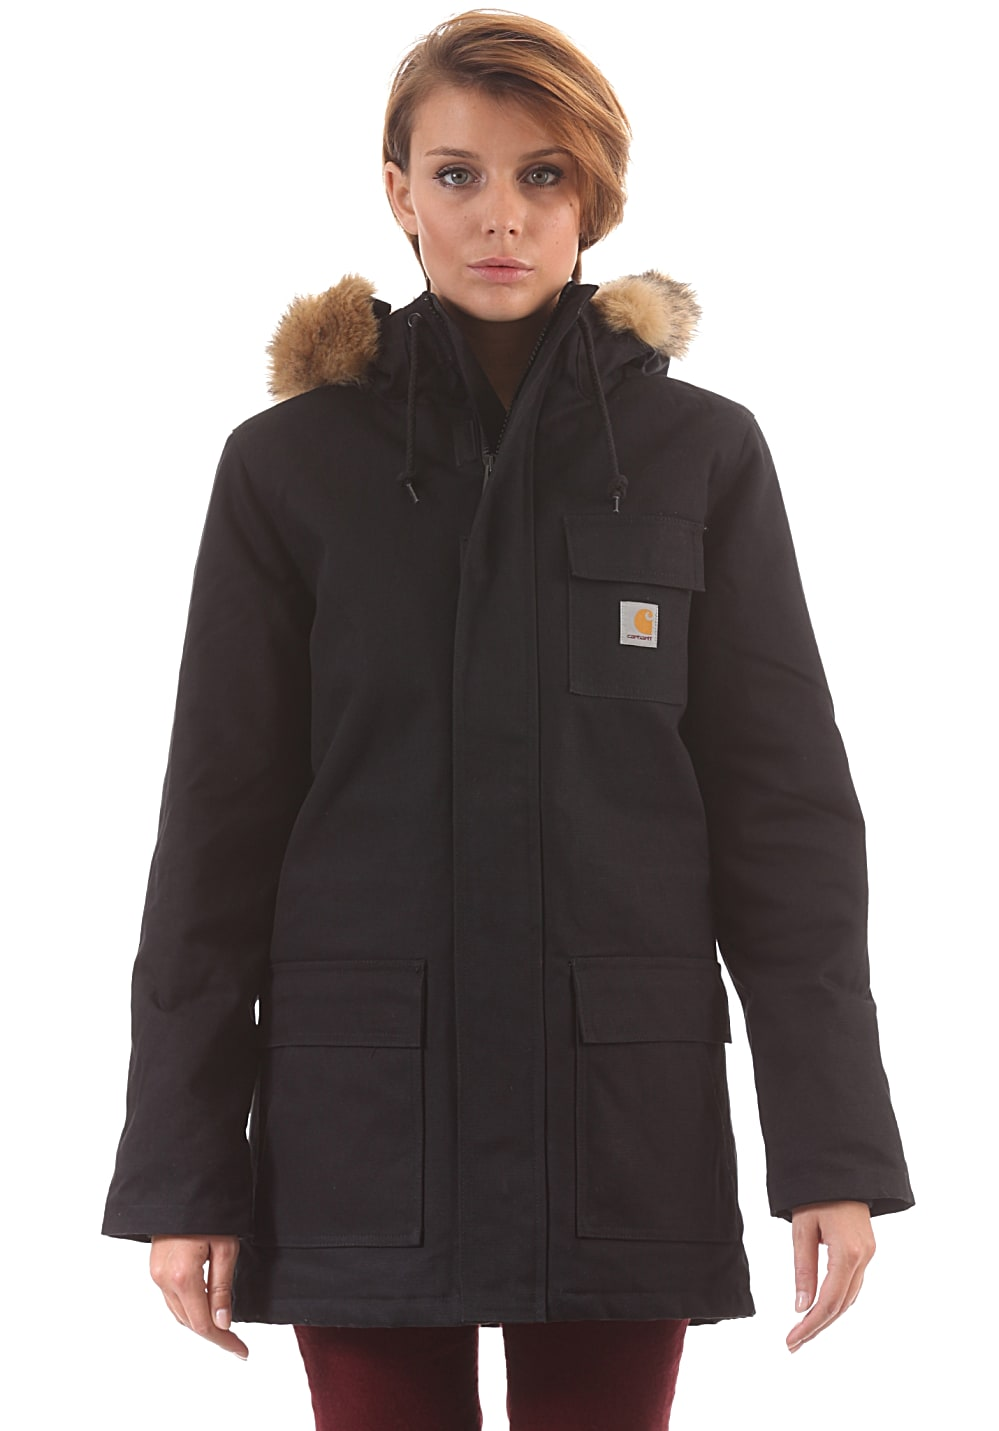 carhartt wip x 39 siberian parka jacke f r damen schwarz planet sports. Black Bedroom Furniture Sets. Home Design Ideas